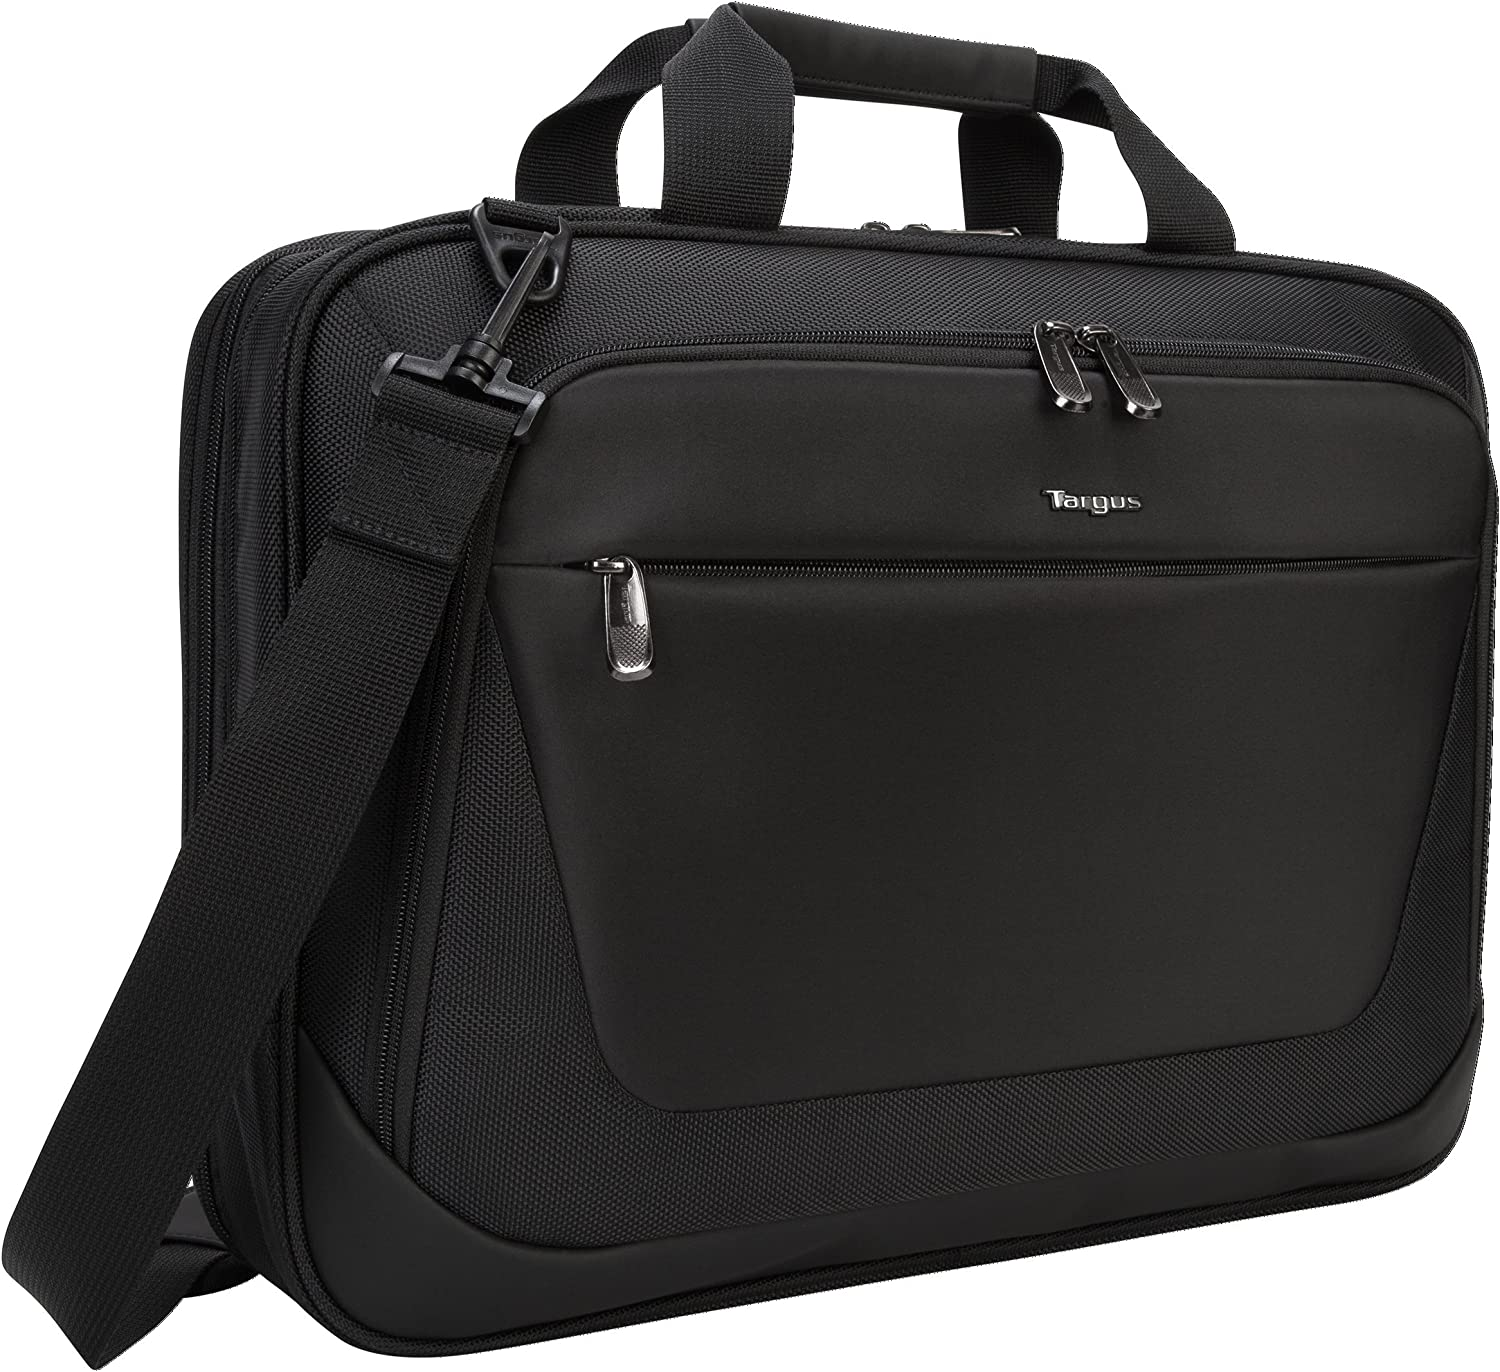 Targus CityLite Laptop Briefcase Shoulder Messenger Bag for 15.6-Inch Laptop, Black (TBT053US)